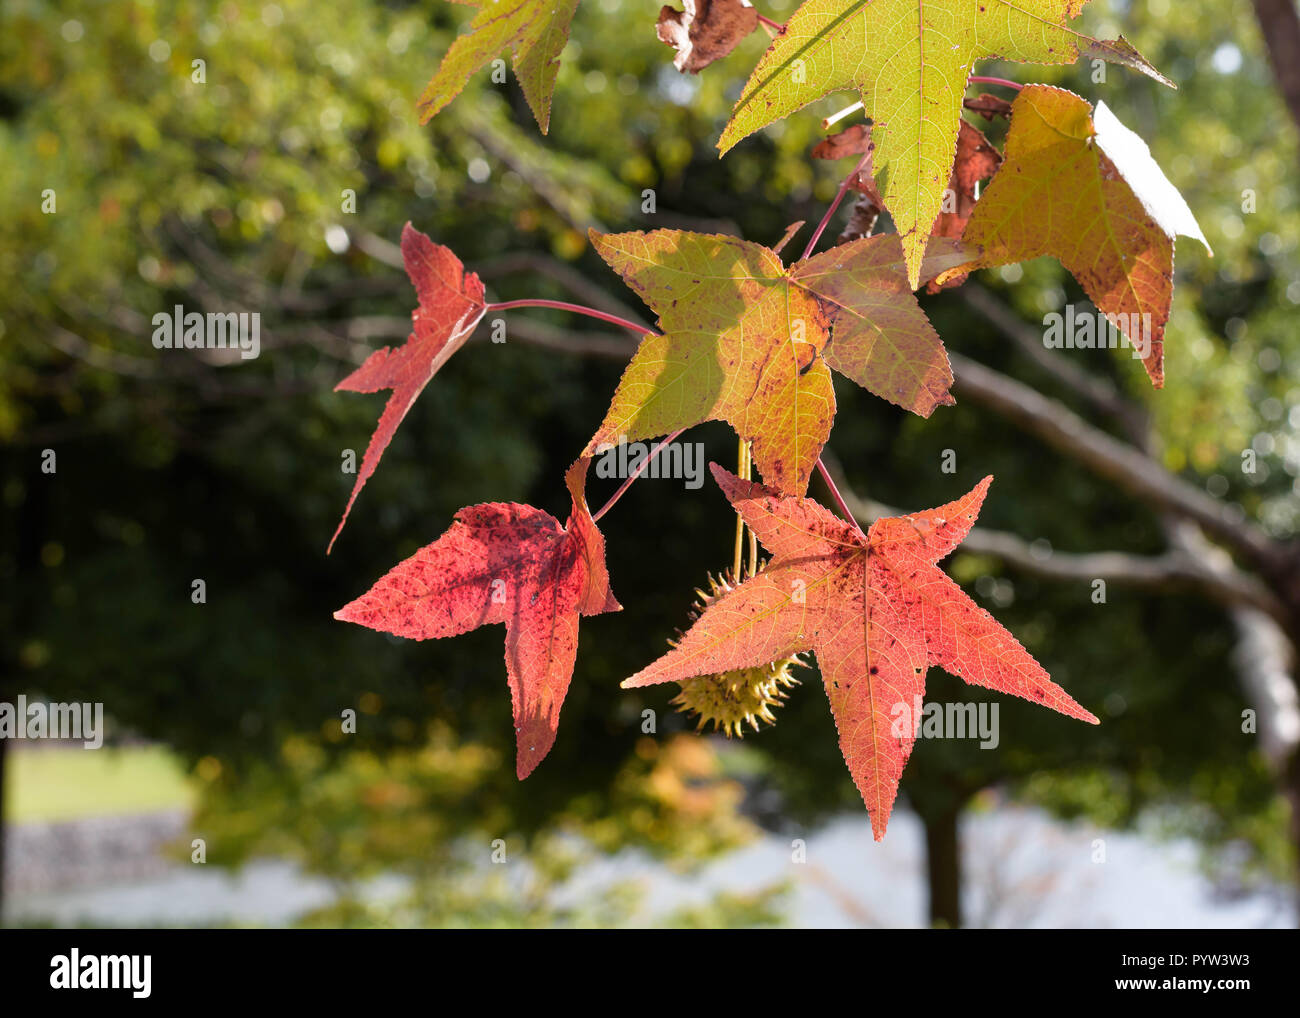 Japanese Maple Leaves Turn Red And Orange In Autumn Or Fall Close